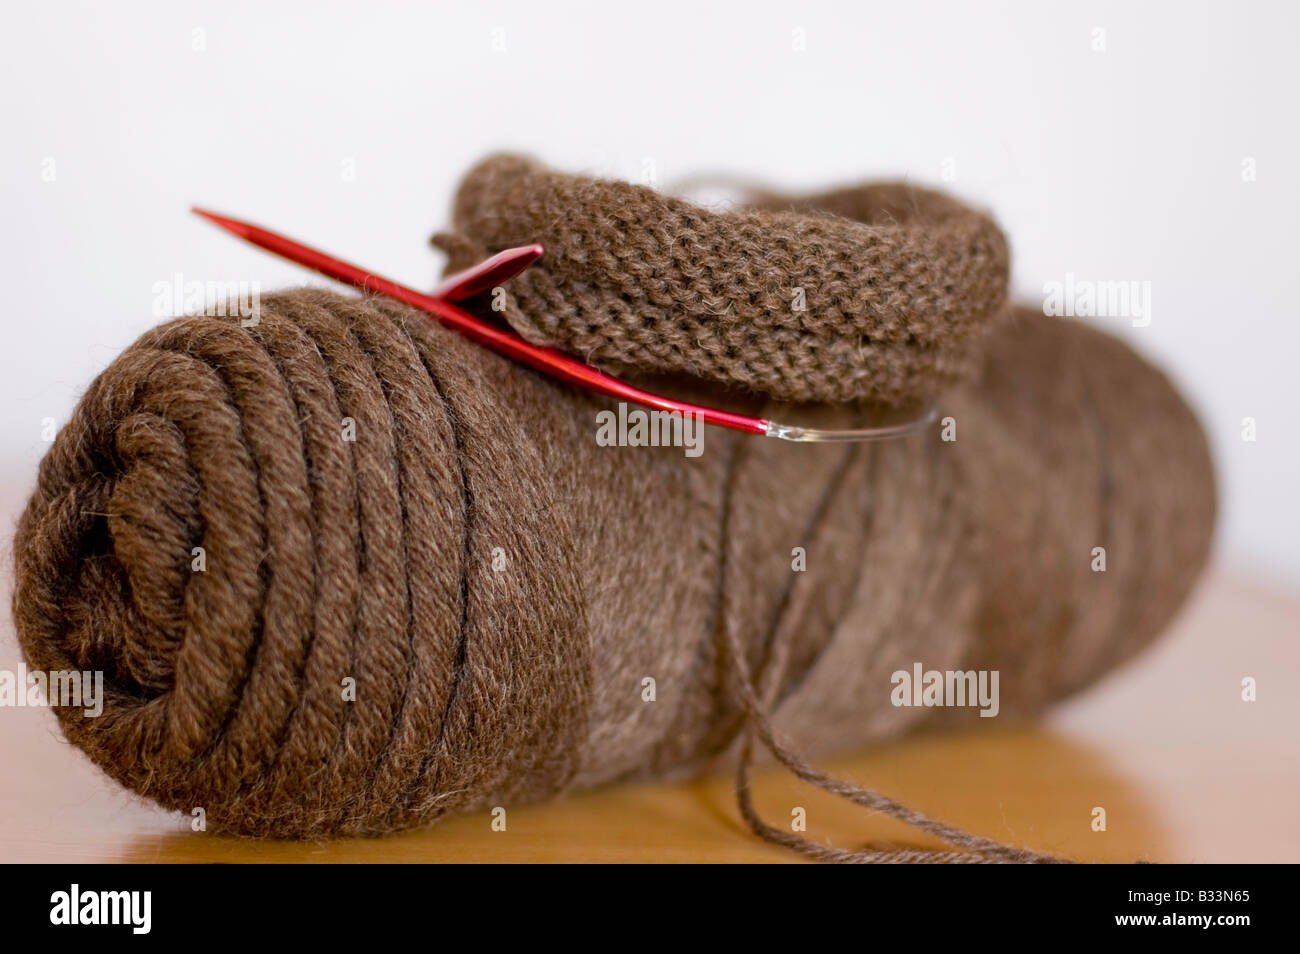 Red knitting needles against a skein of brown yarn. - Stock Image